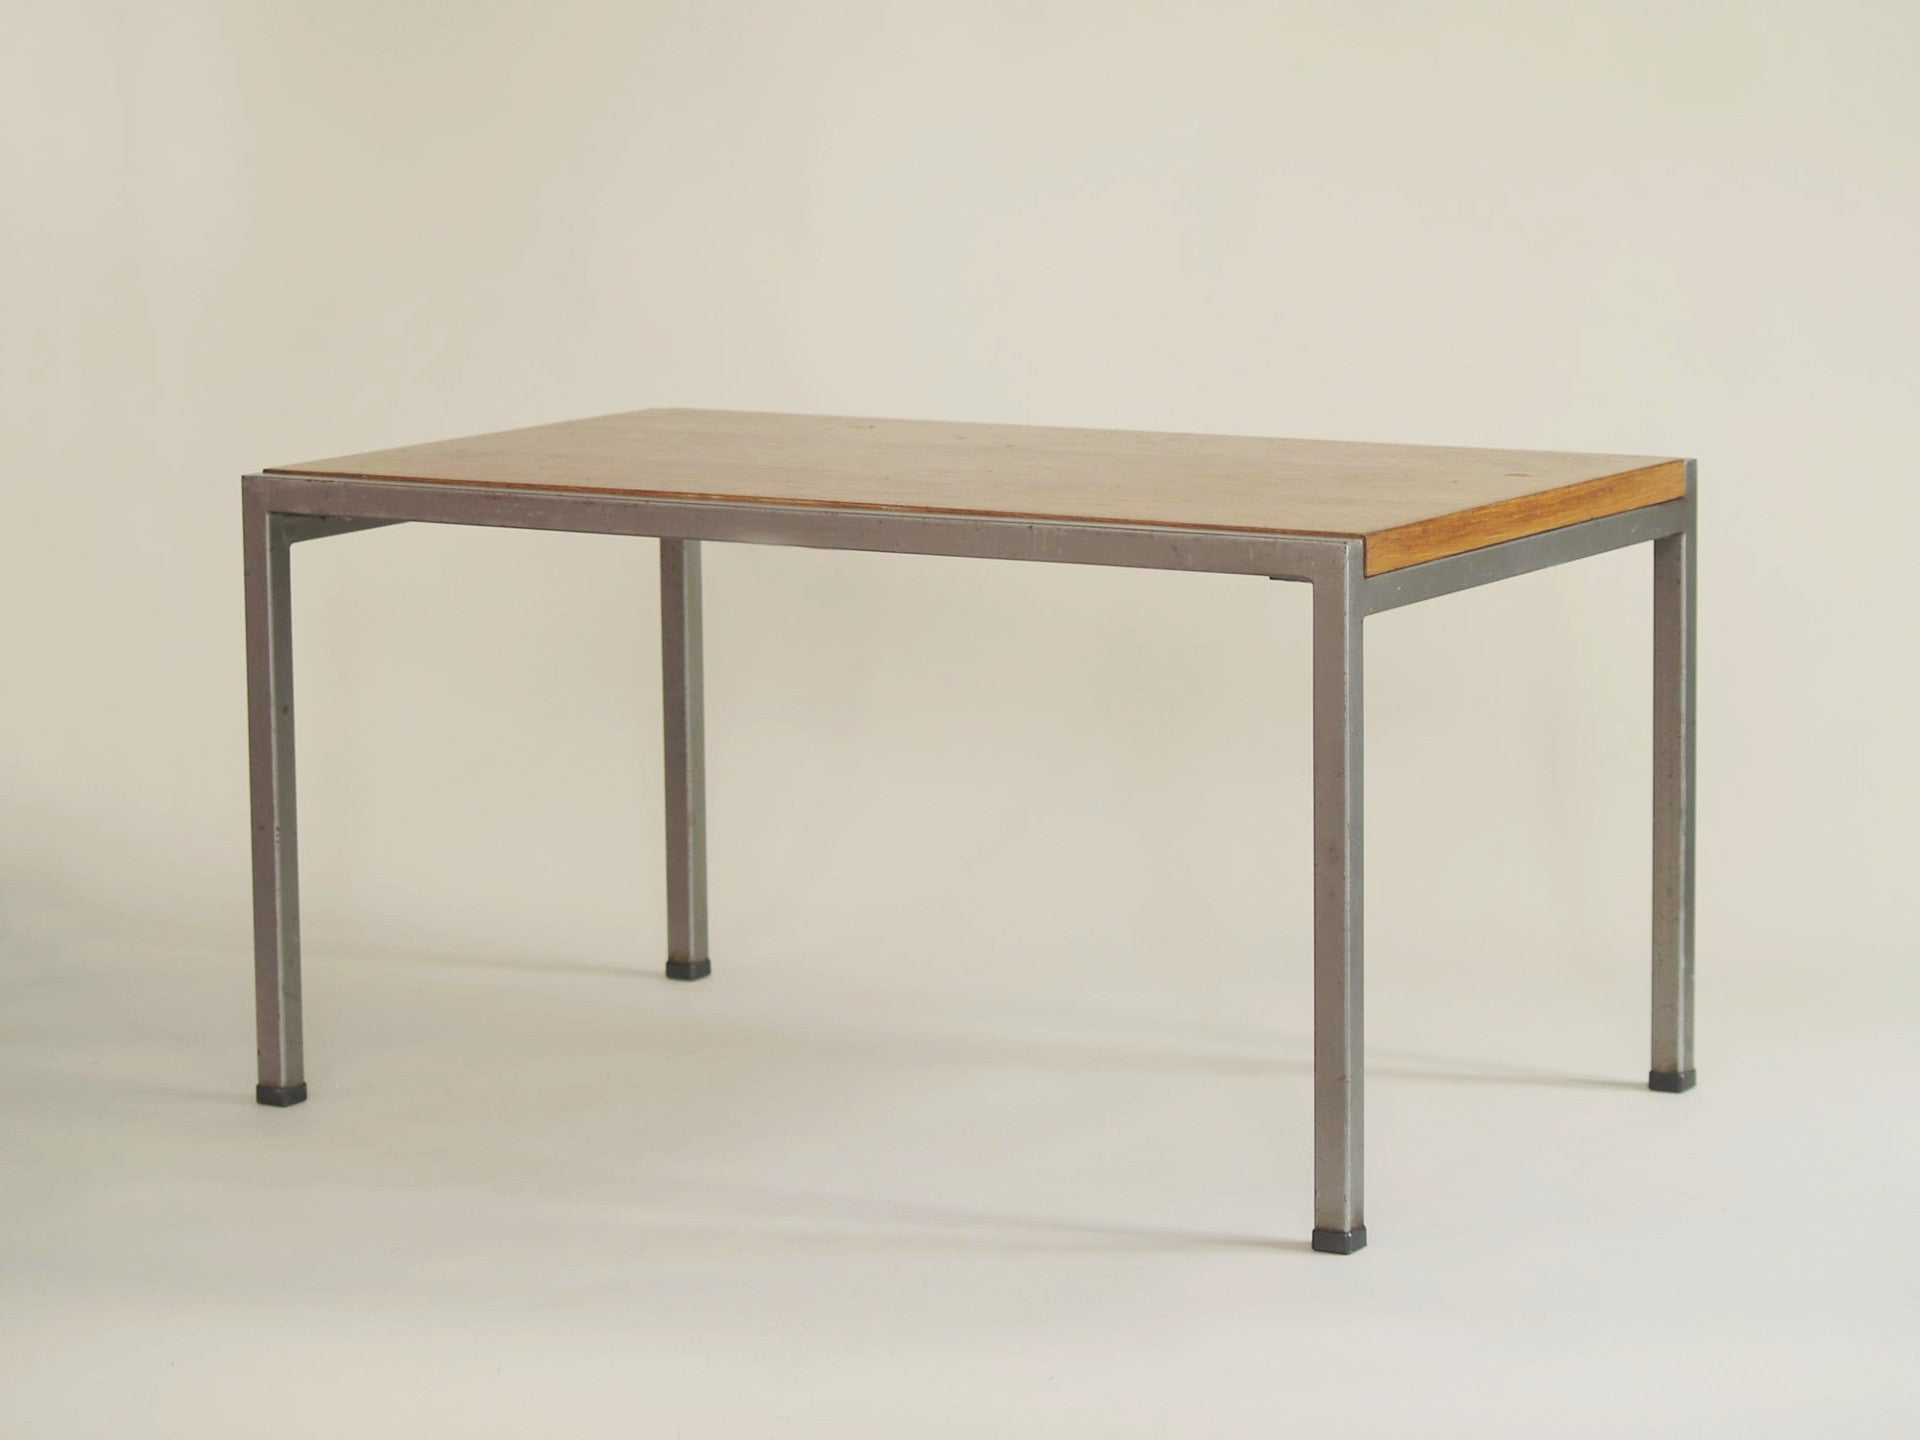 occasional corbusier ensemble frydman nelson table coffee galerie basse basses knoll products de set stimmung efa rationaliste tables george vers georges circa rationalistes rationalist deux pour france